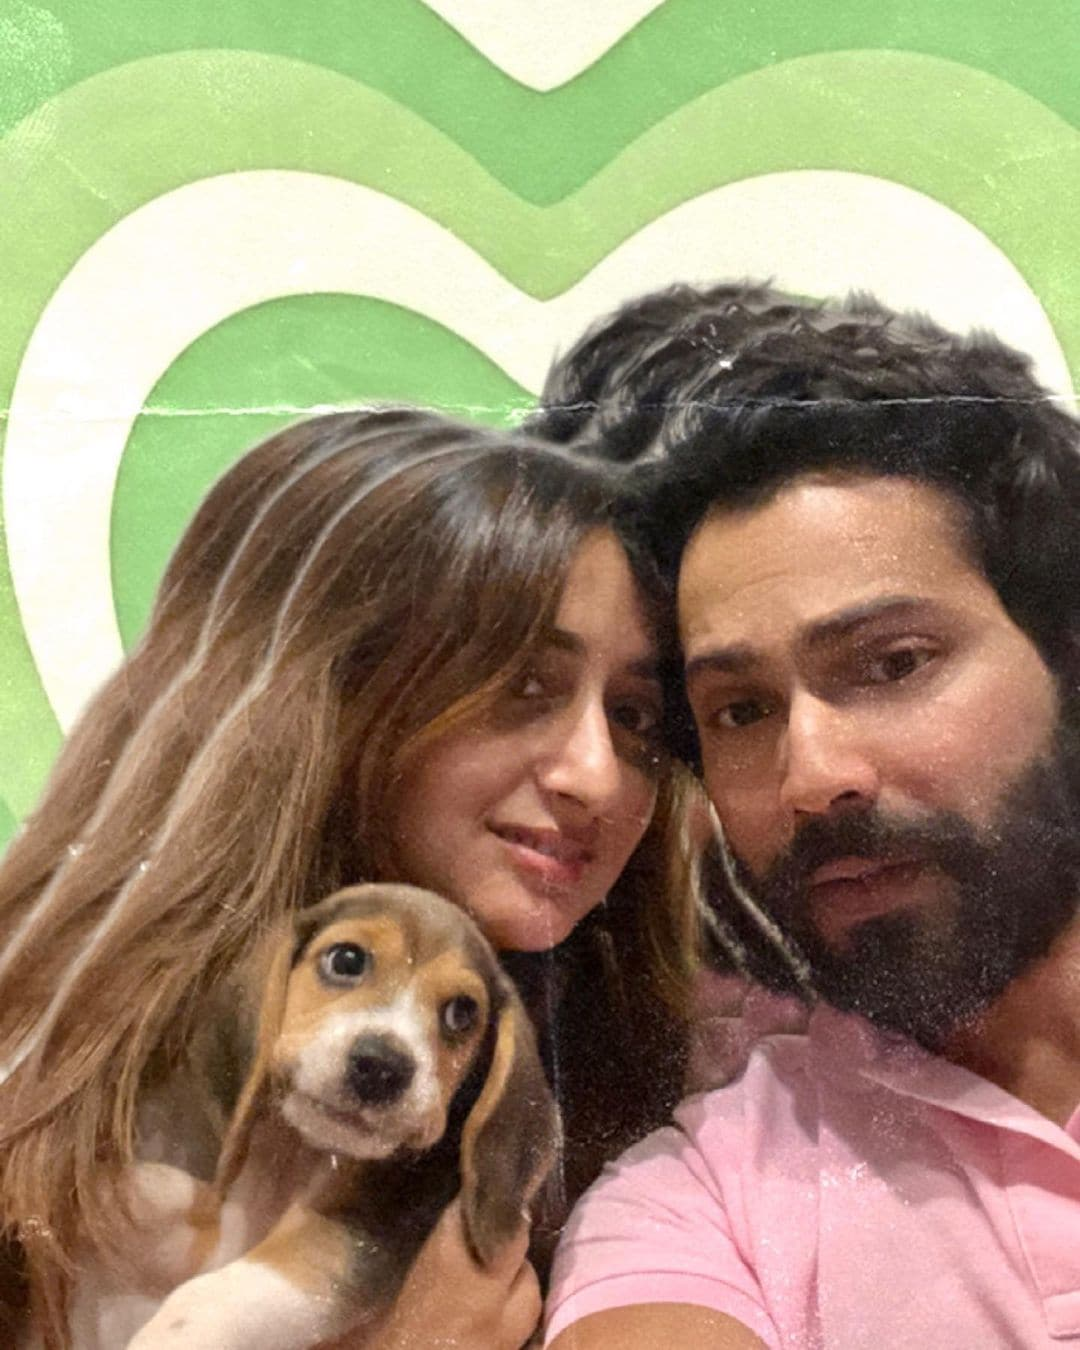 Varun Dhawan shared and deleted a post with his wife Natasha Dalal and their dog Joey.